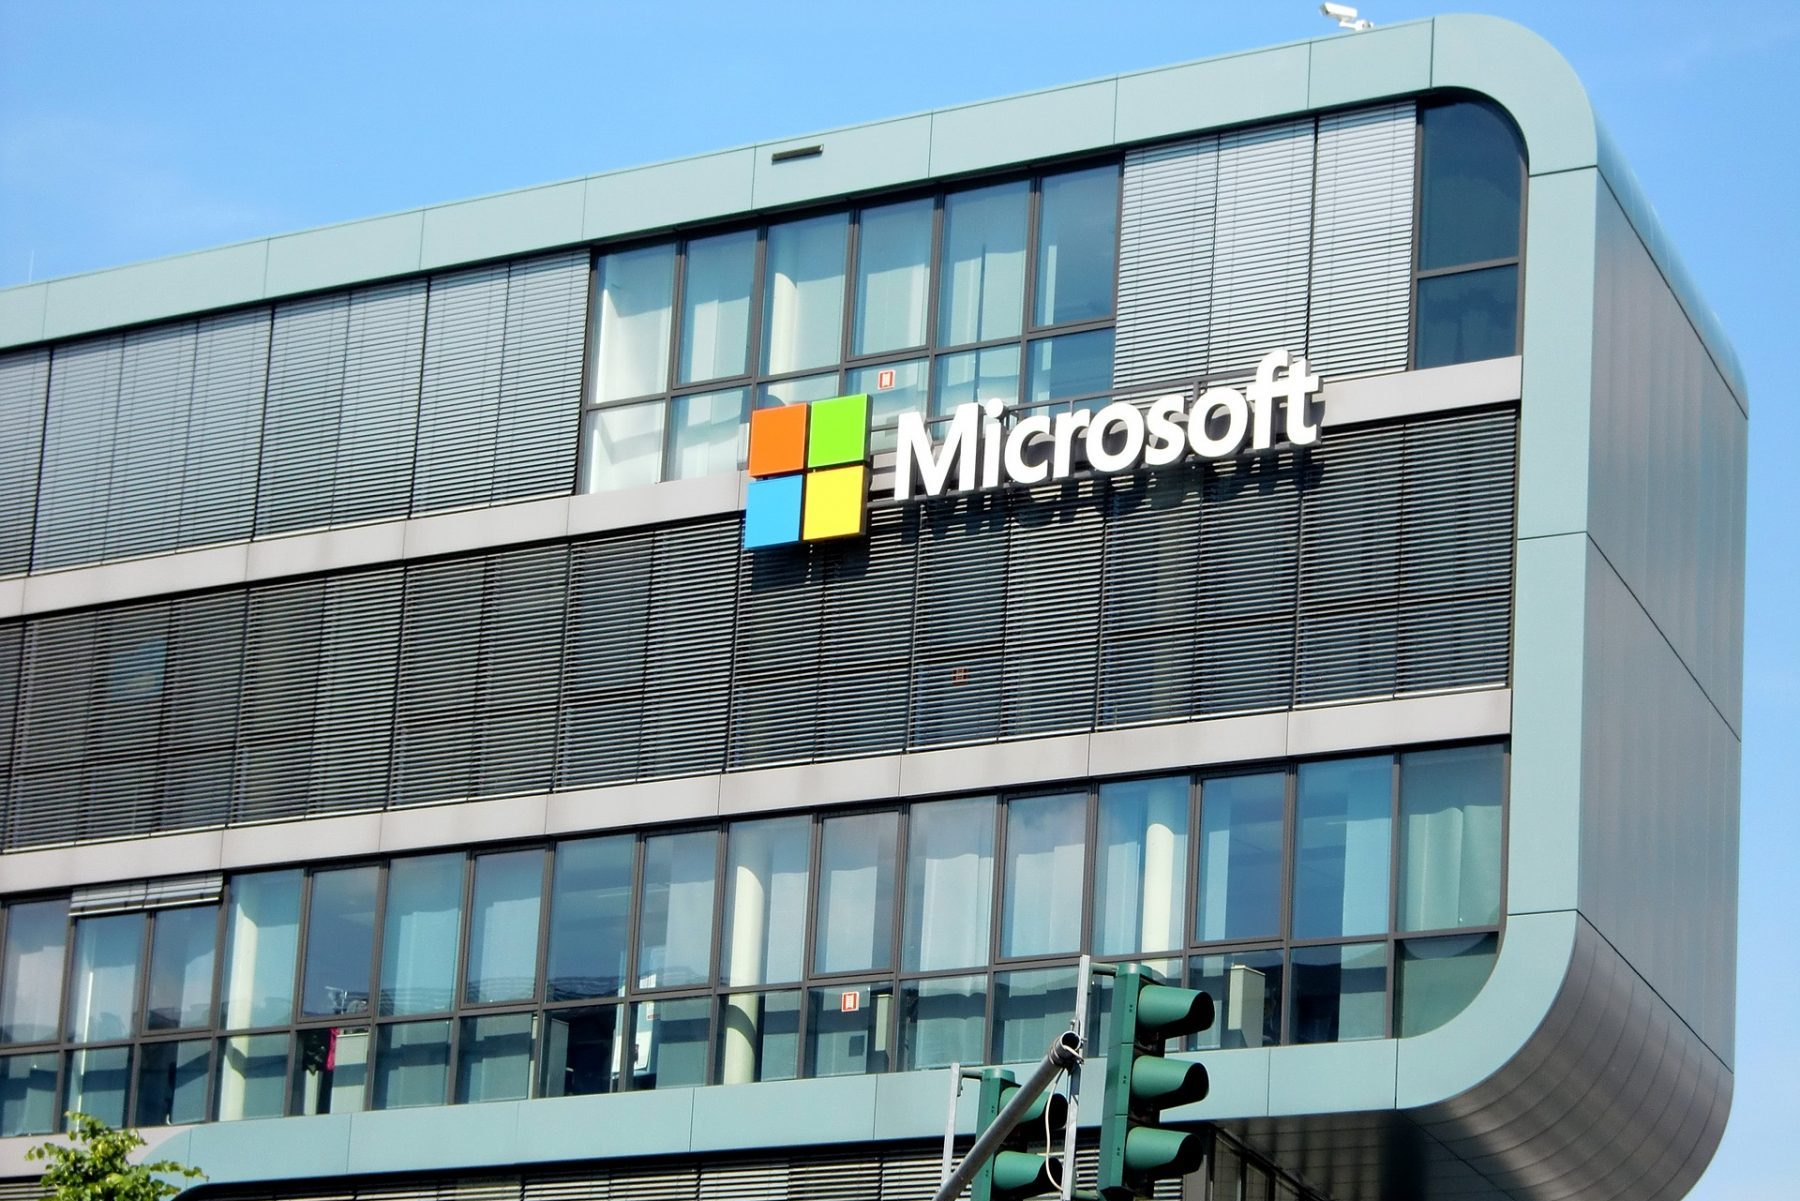 Microsoft building in article about Microsoft Azure